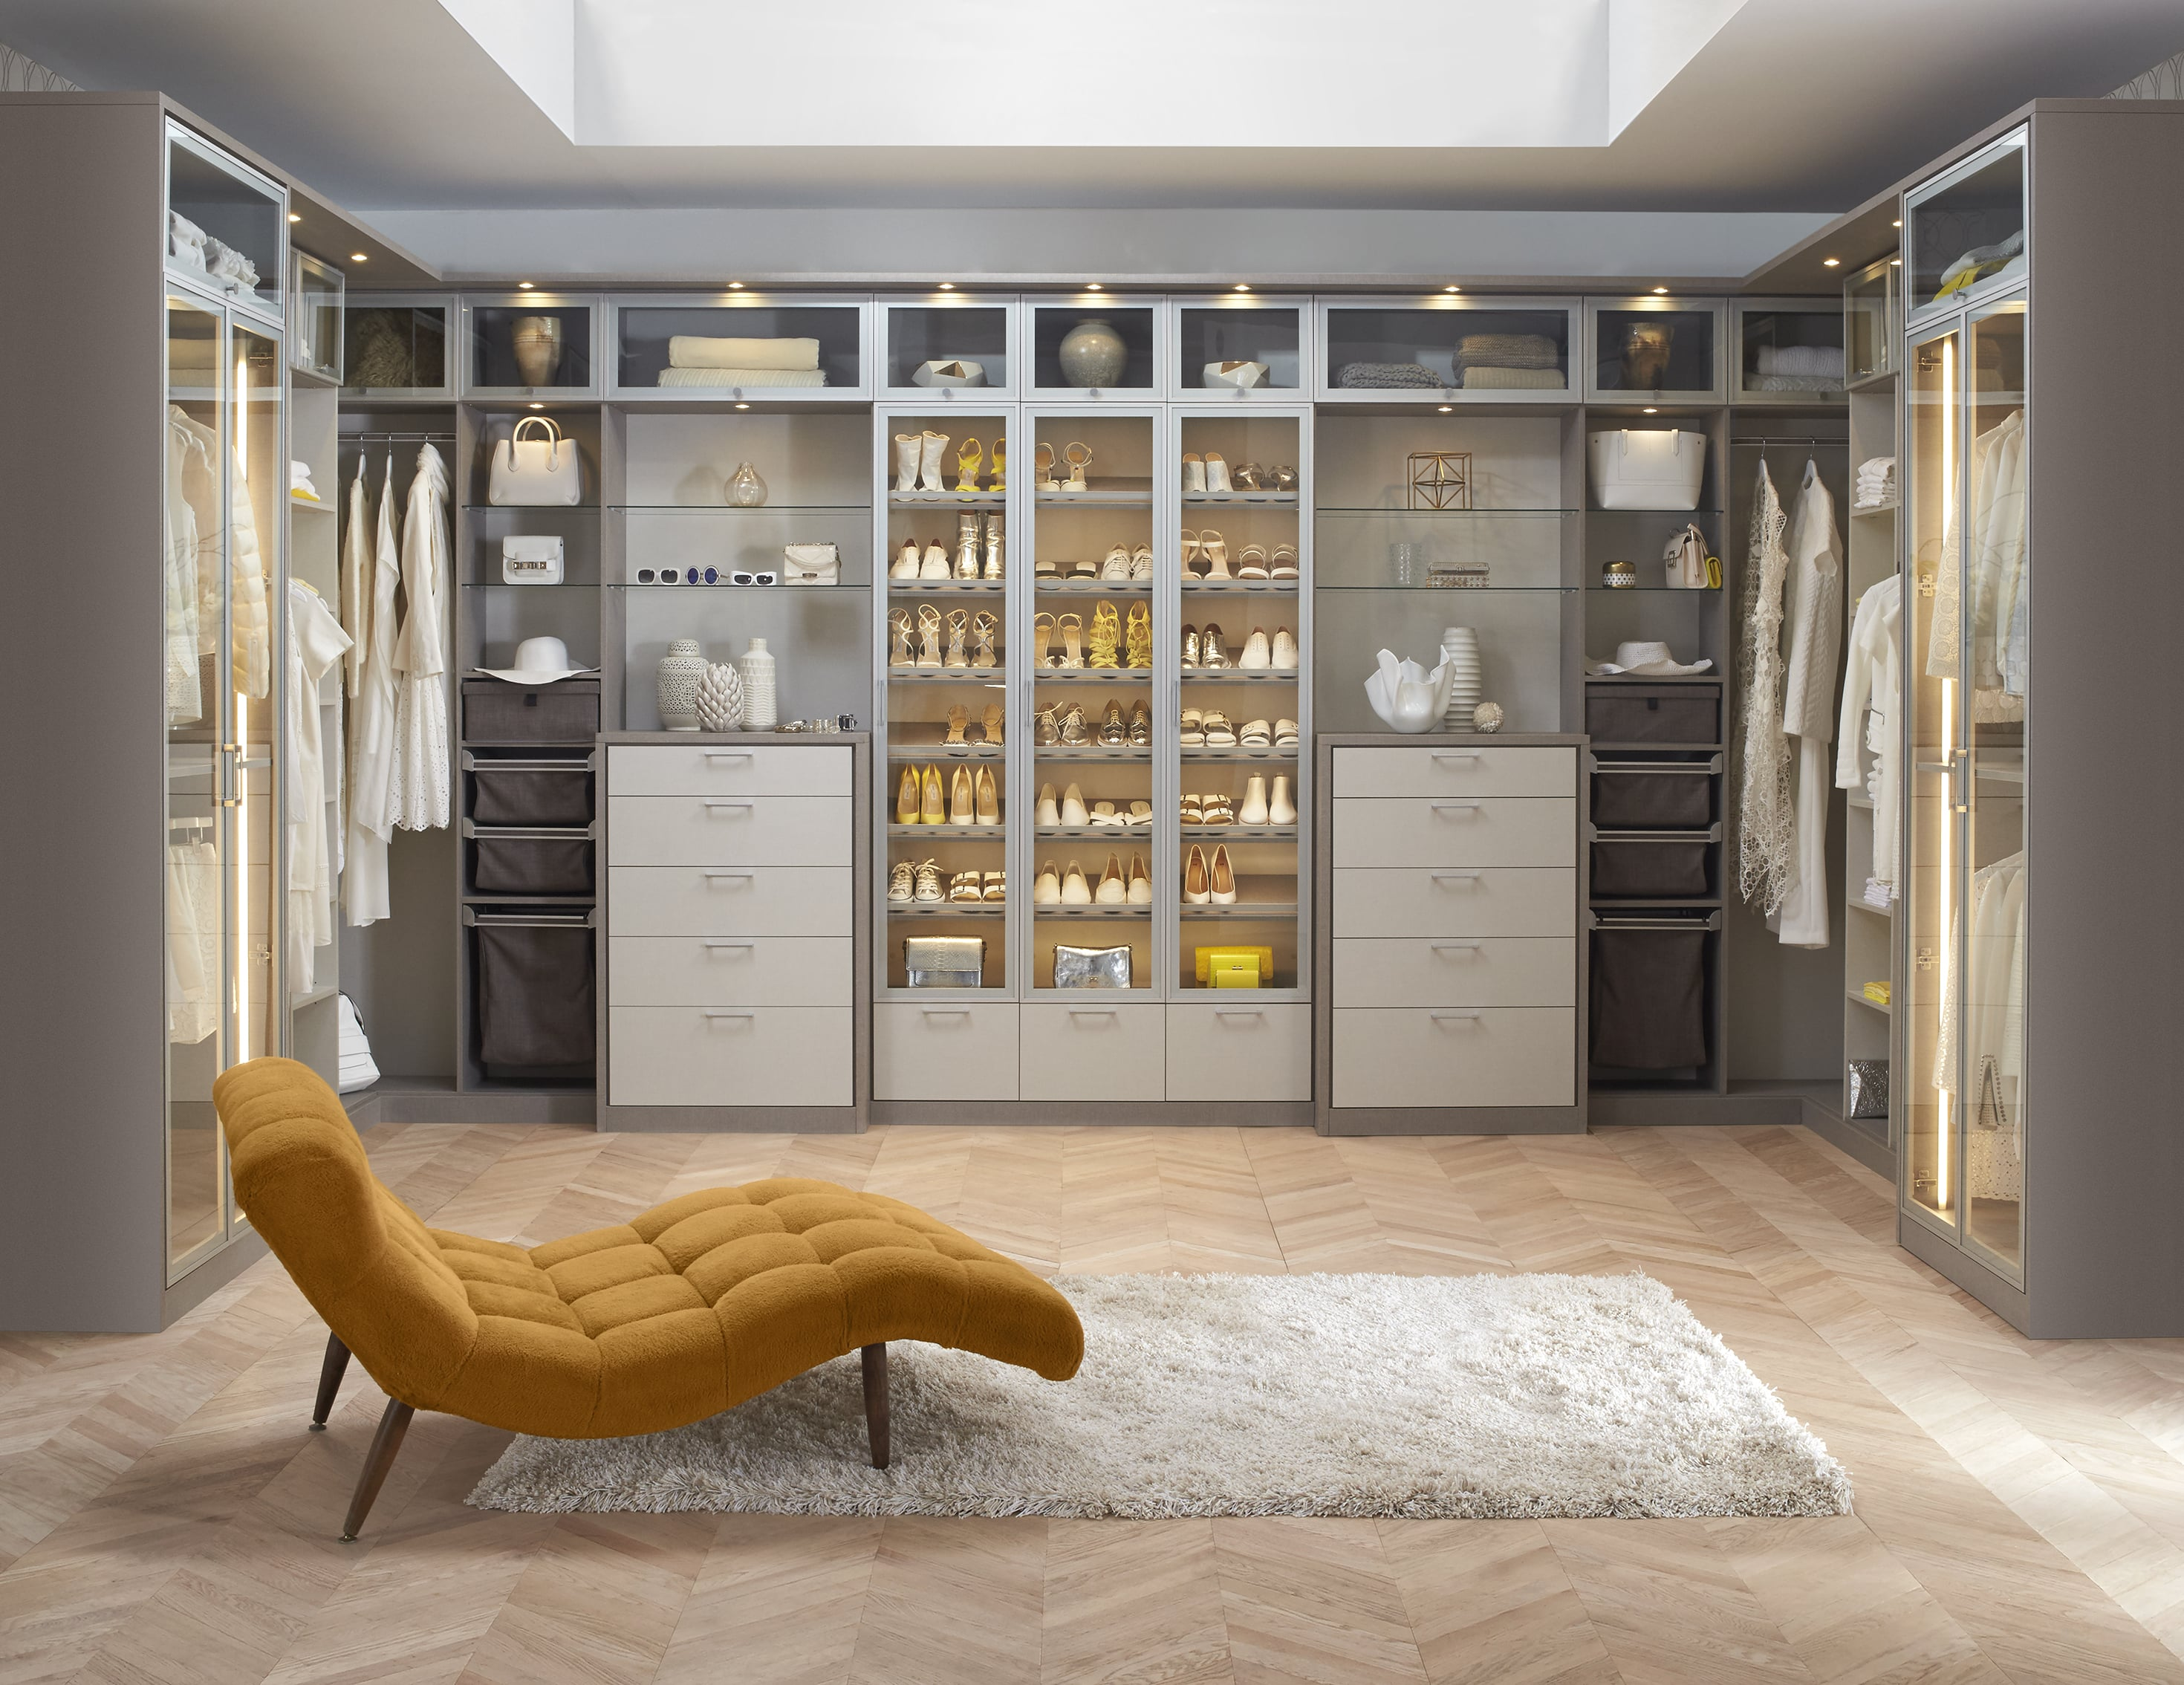 Element Designs and California Closets Transforming Spaces